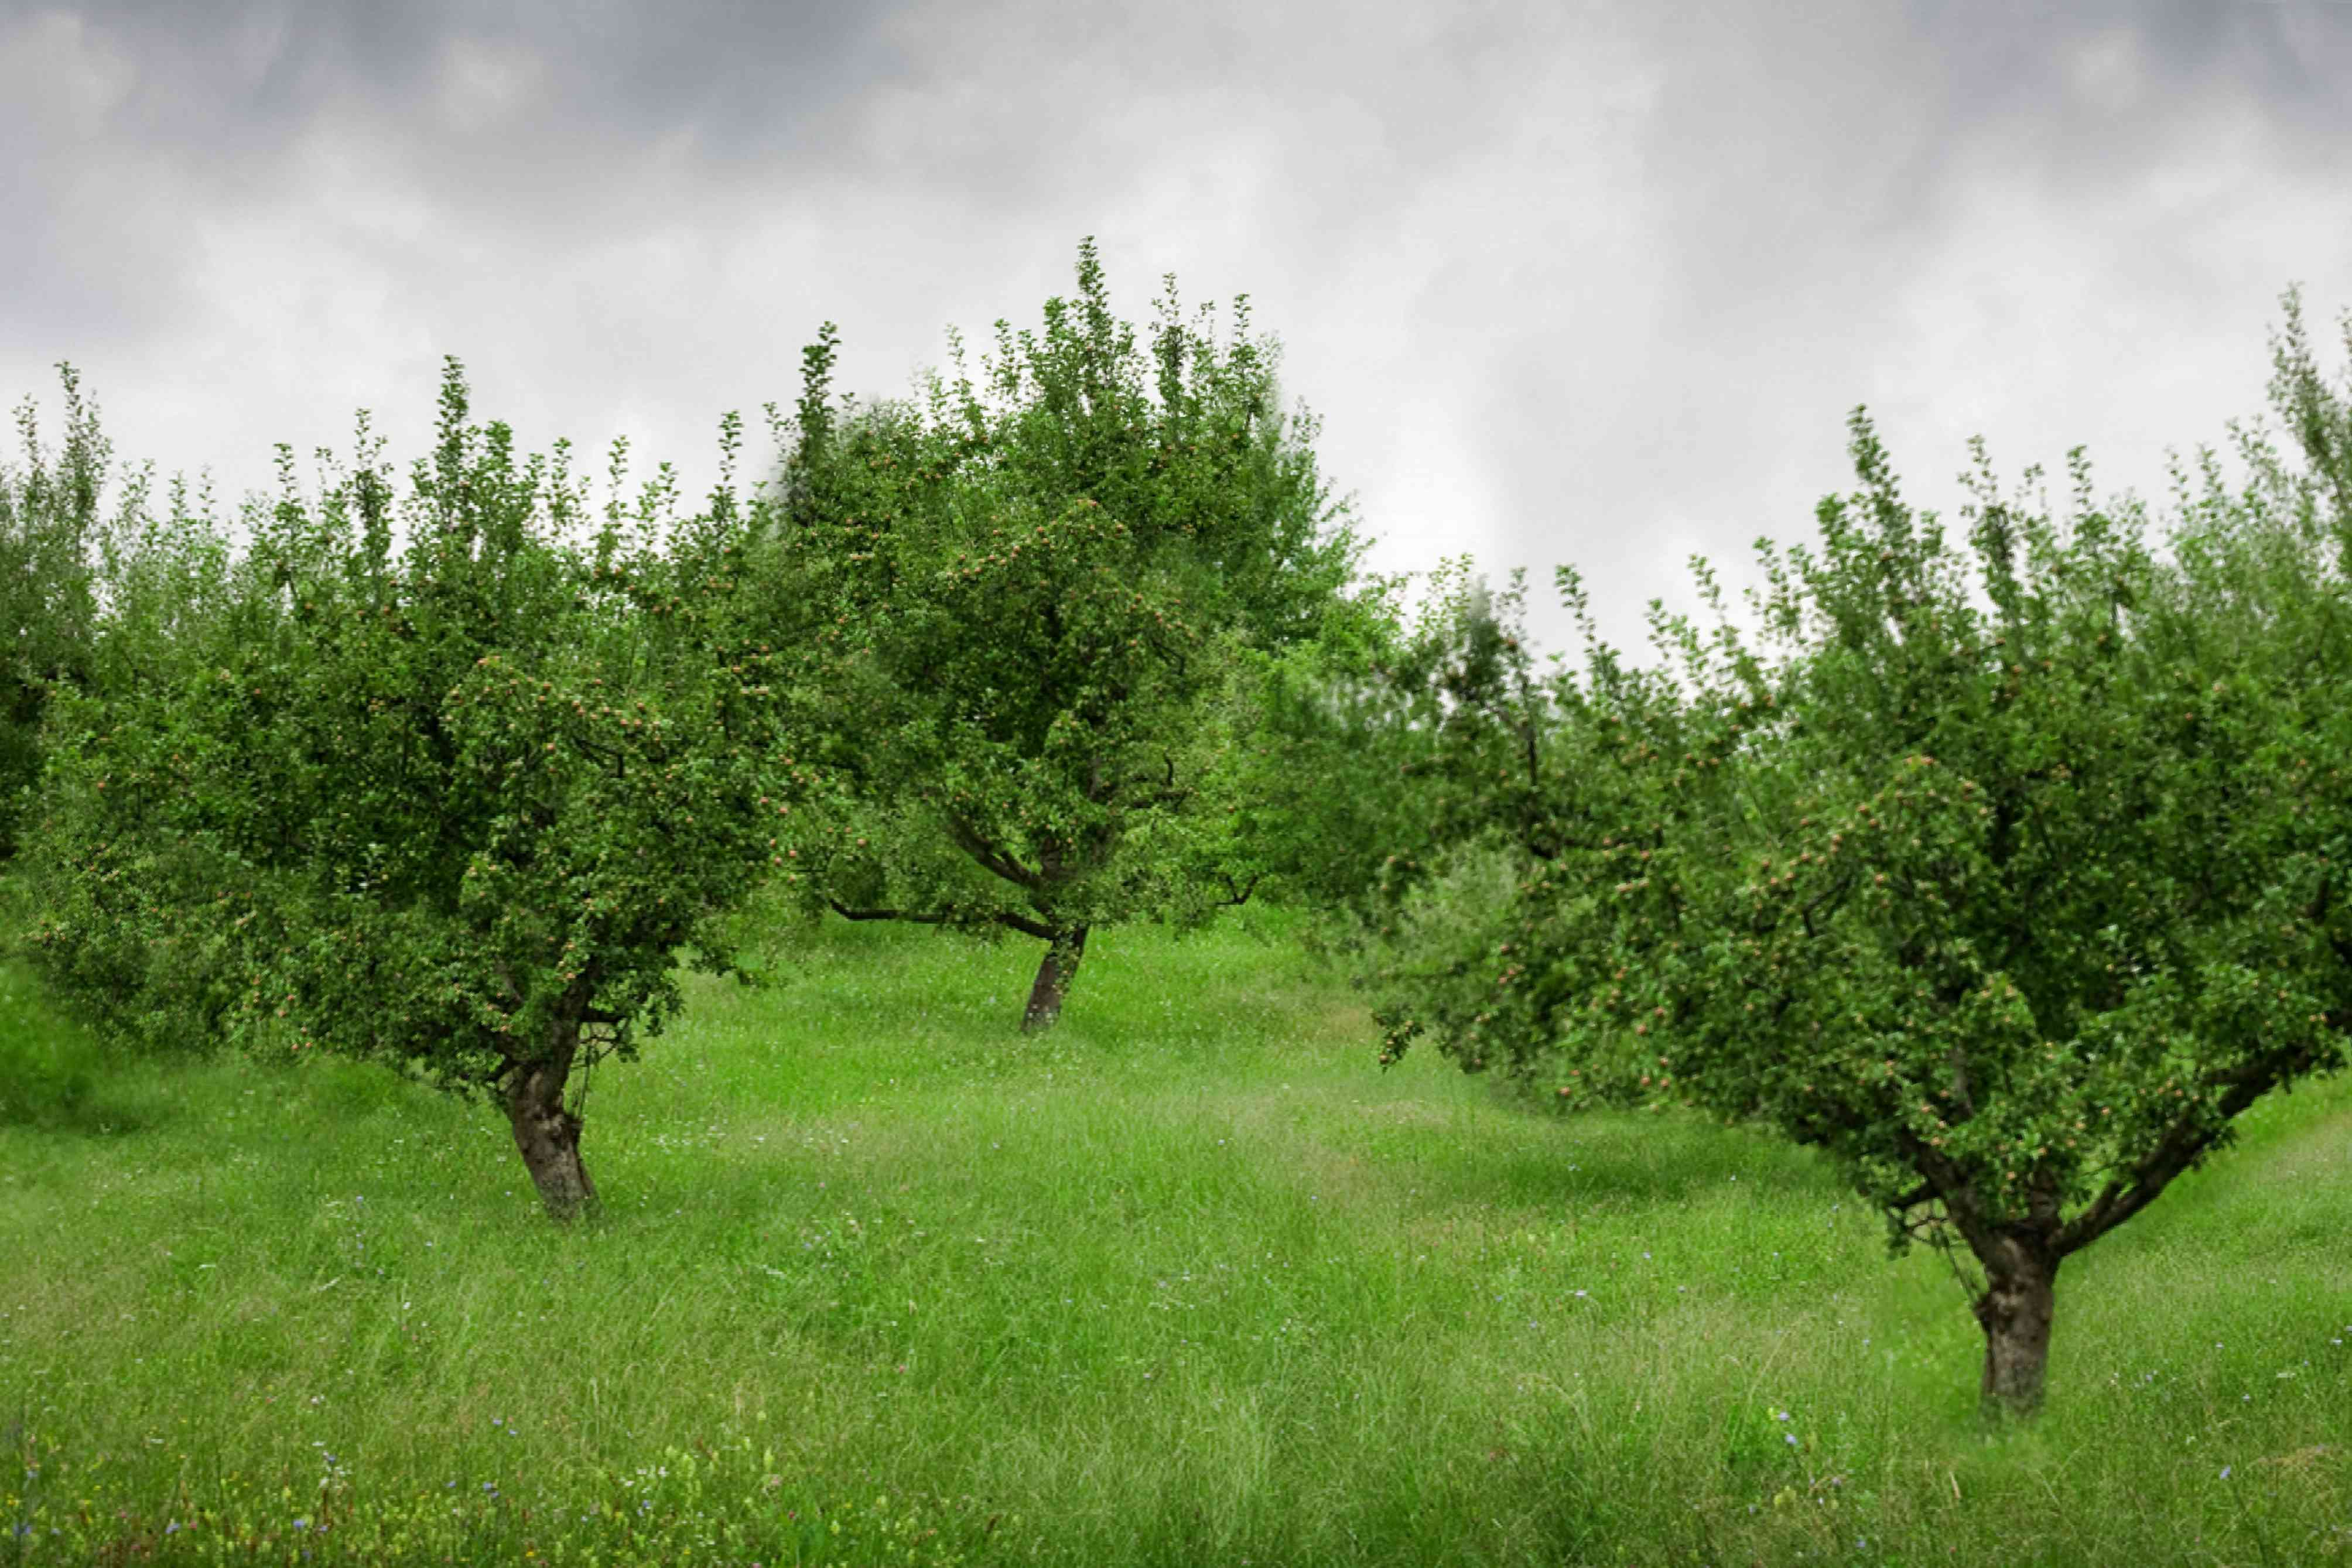 Early harvest apple trees in orchard surrounded by tall grass